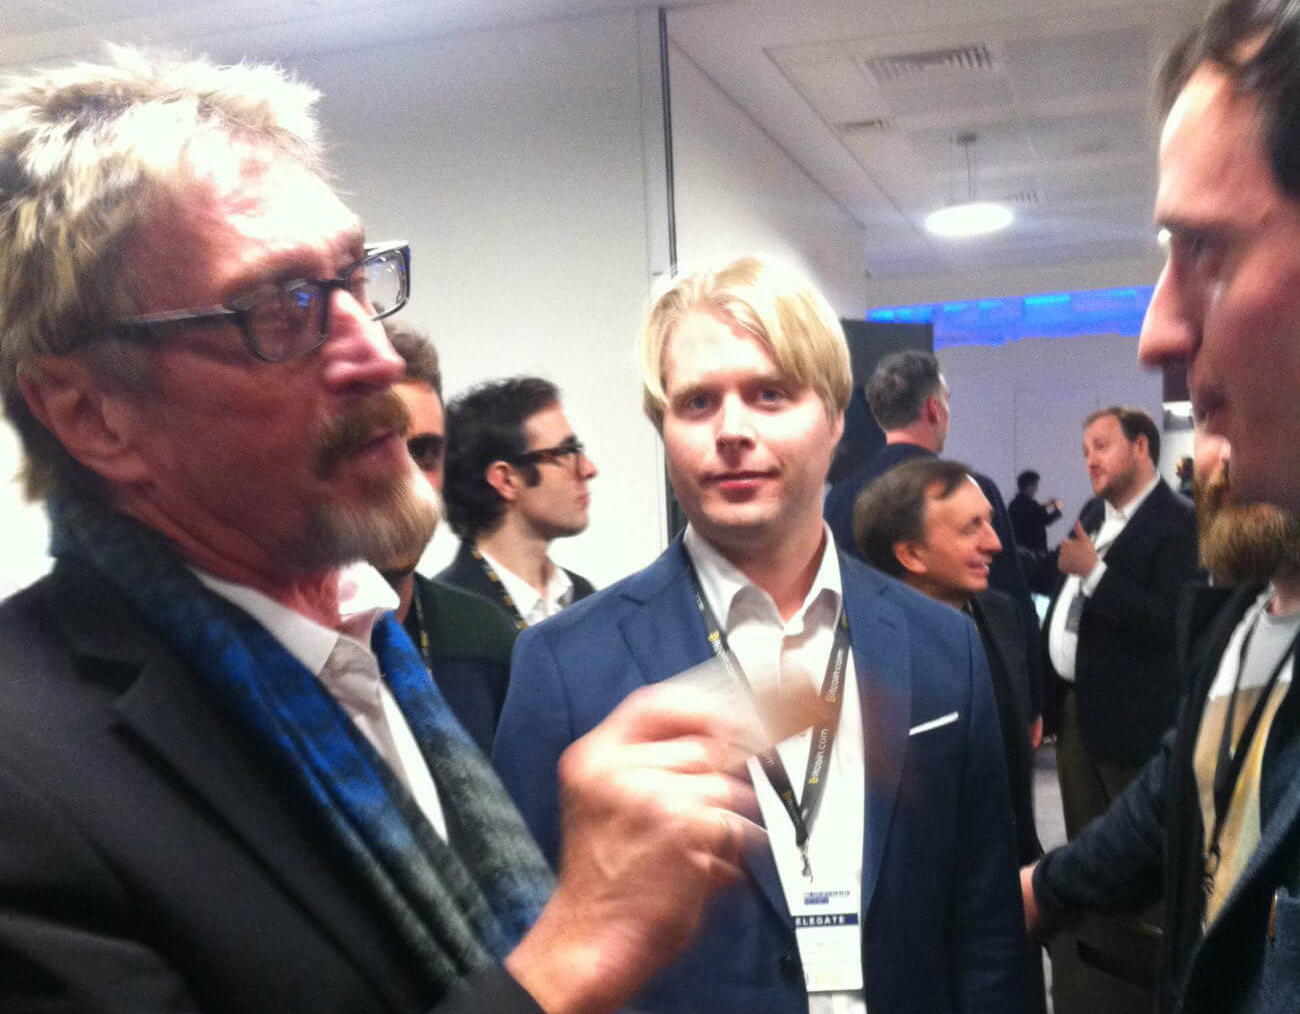 McAfee (left) at the blockchain money conference in London 2016